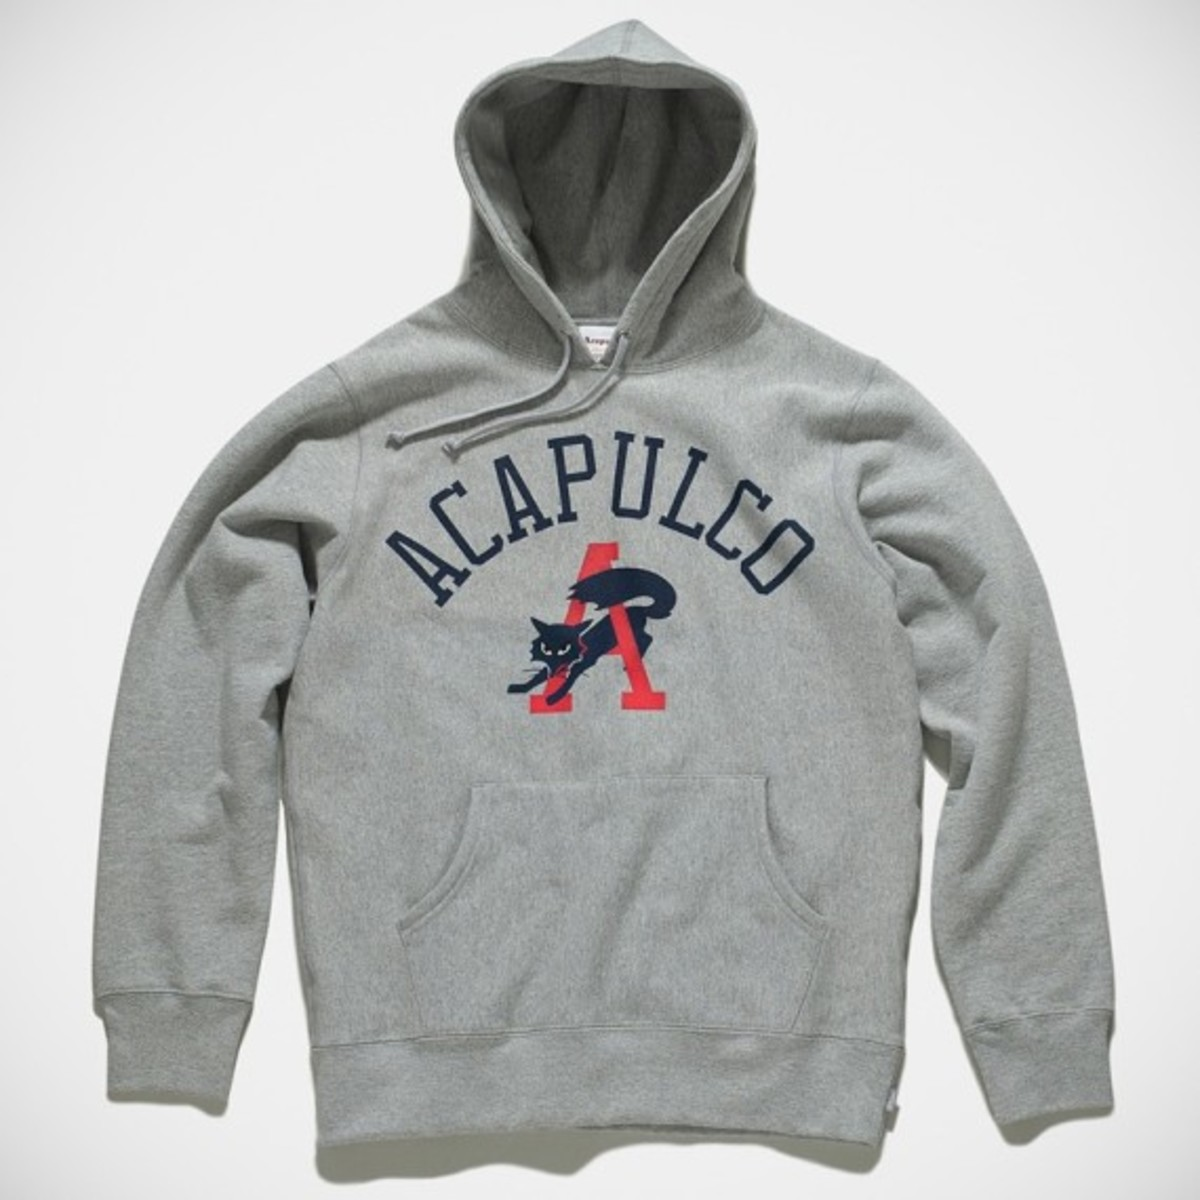 acapulco-gold-spring-2014-collection-delivery-1-25